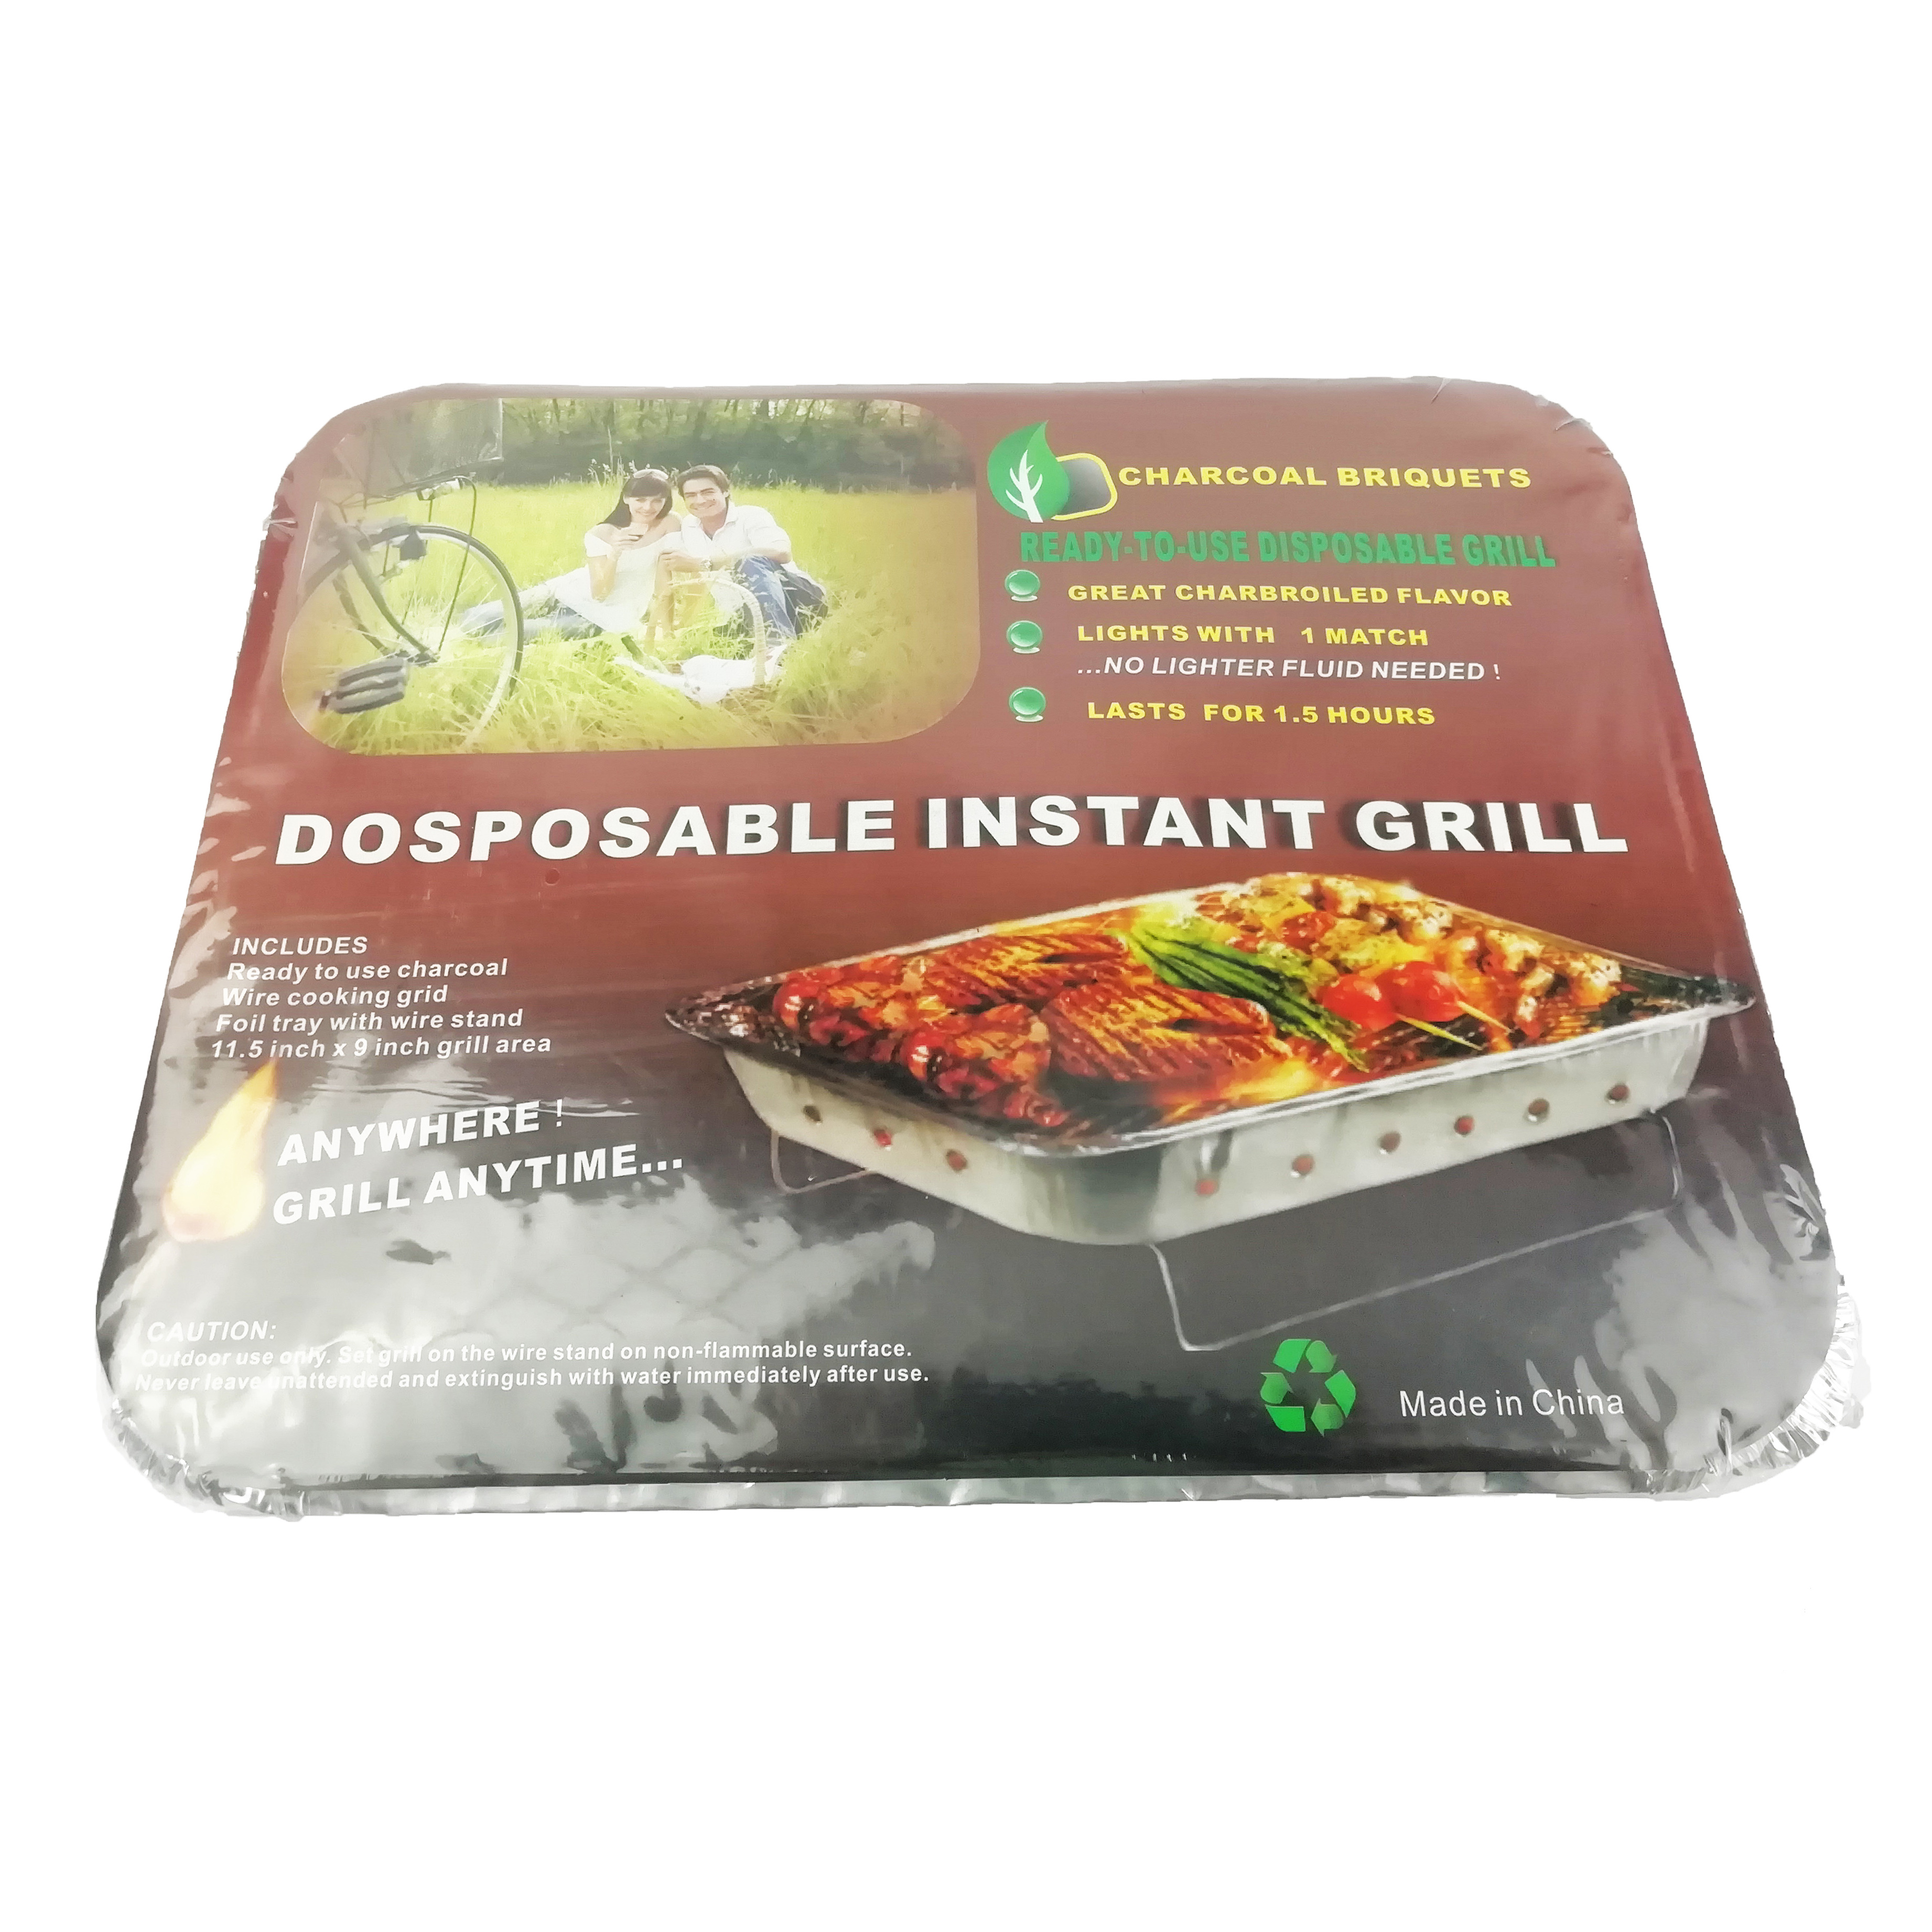 DOSPOSABLE instant grill